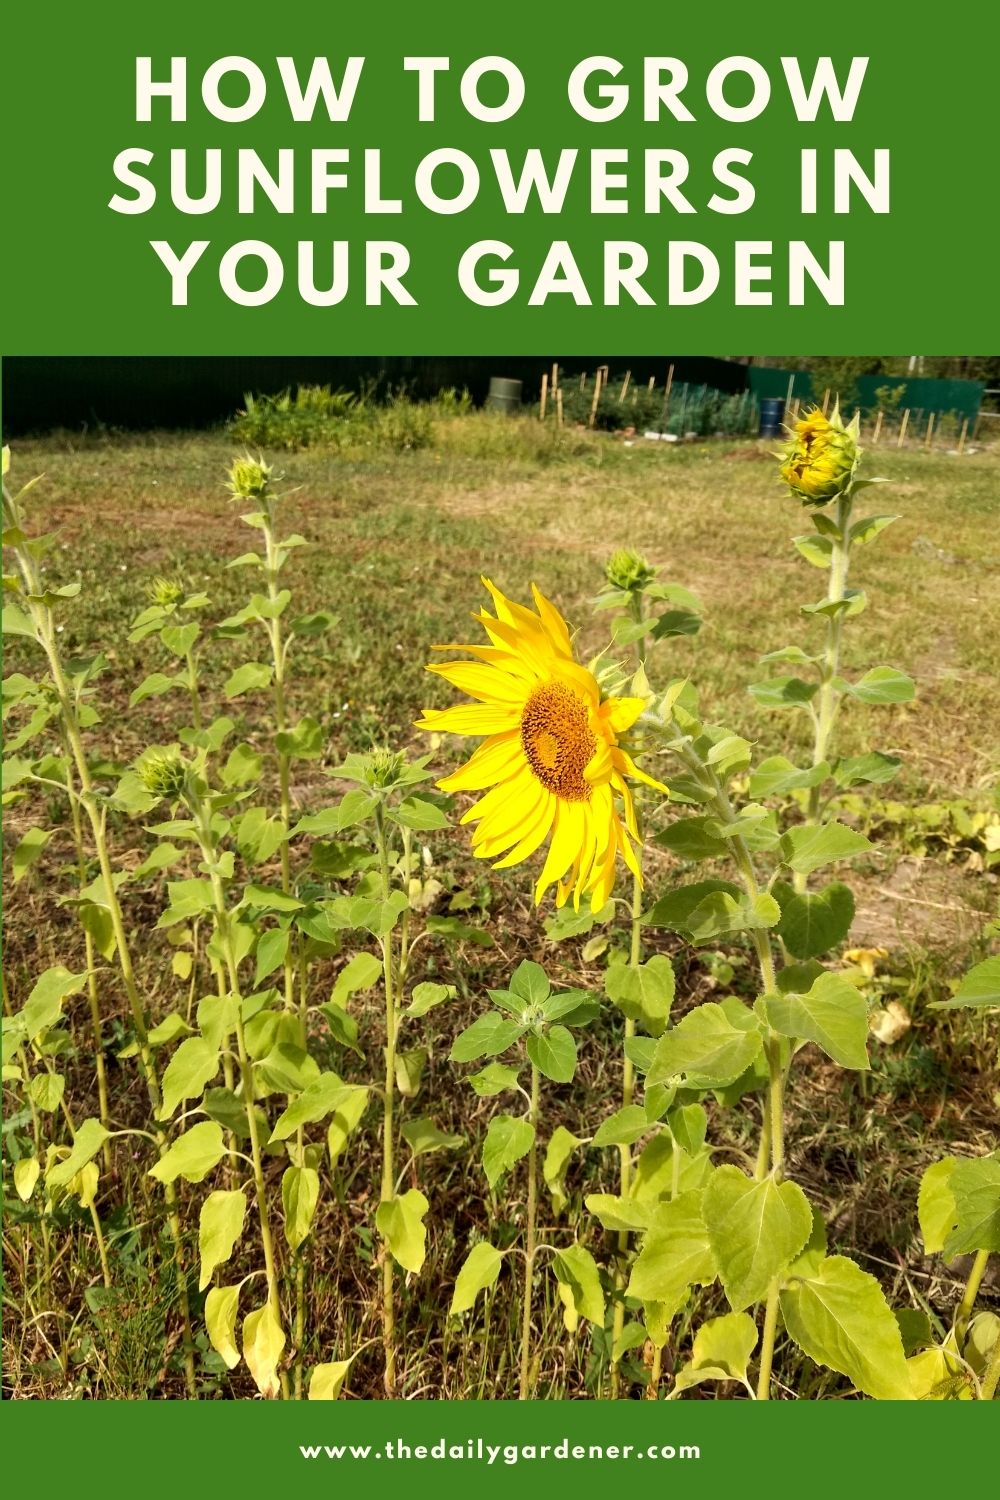 How to Grow Sunflowers in Your Garden 1